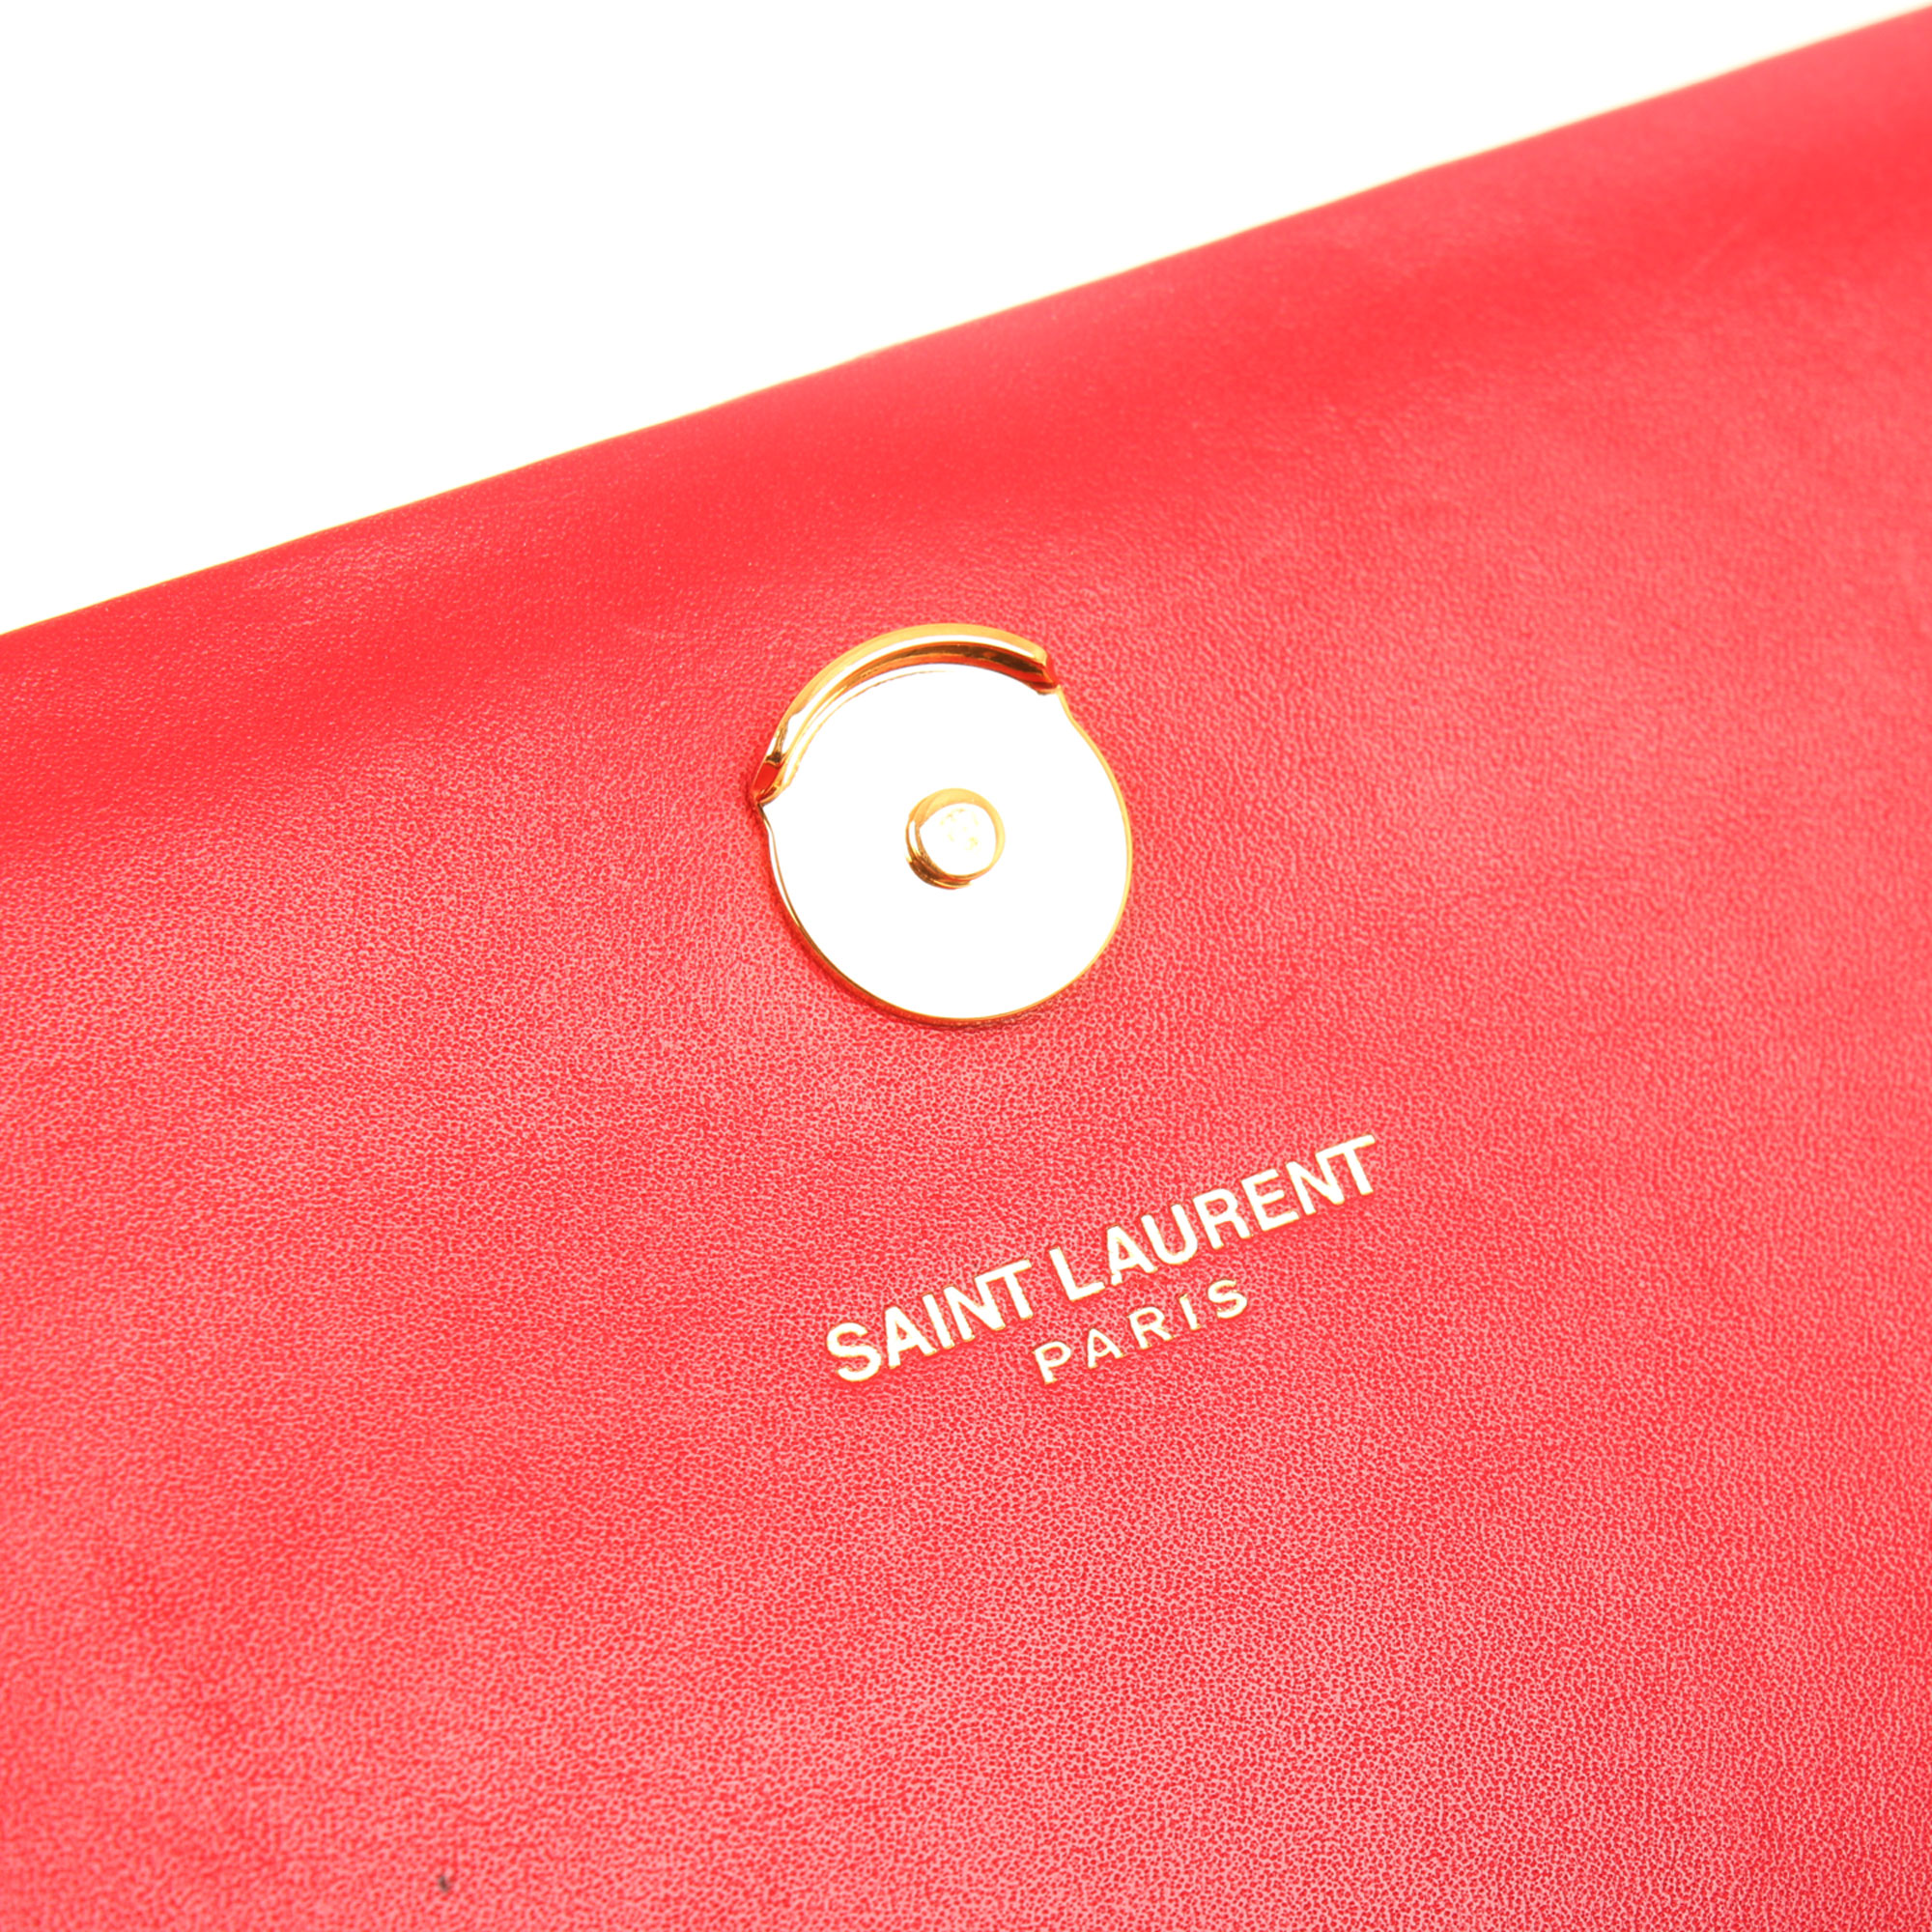 Clasp detail image of ysl kate medium bag red calfskin leather clasp